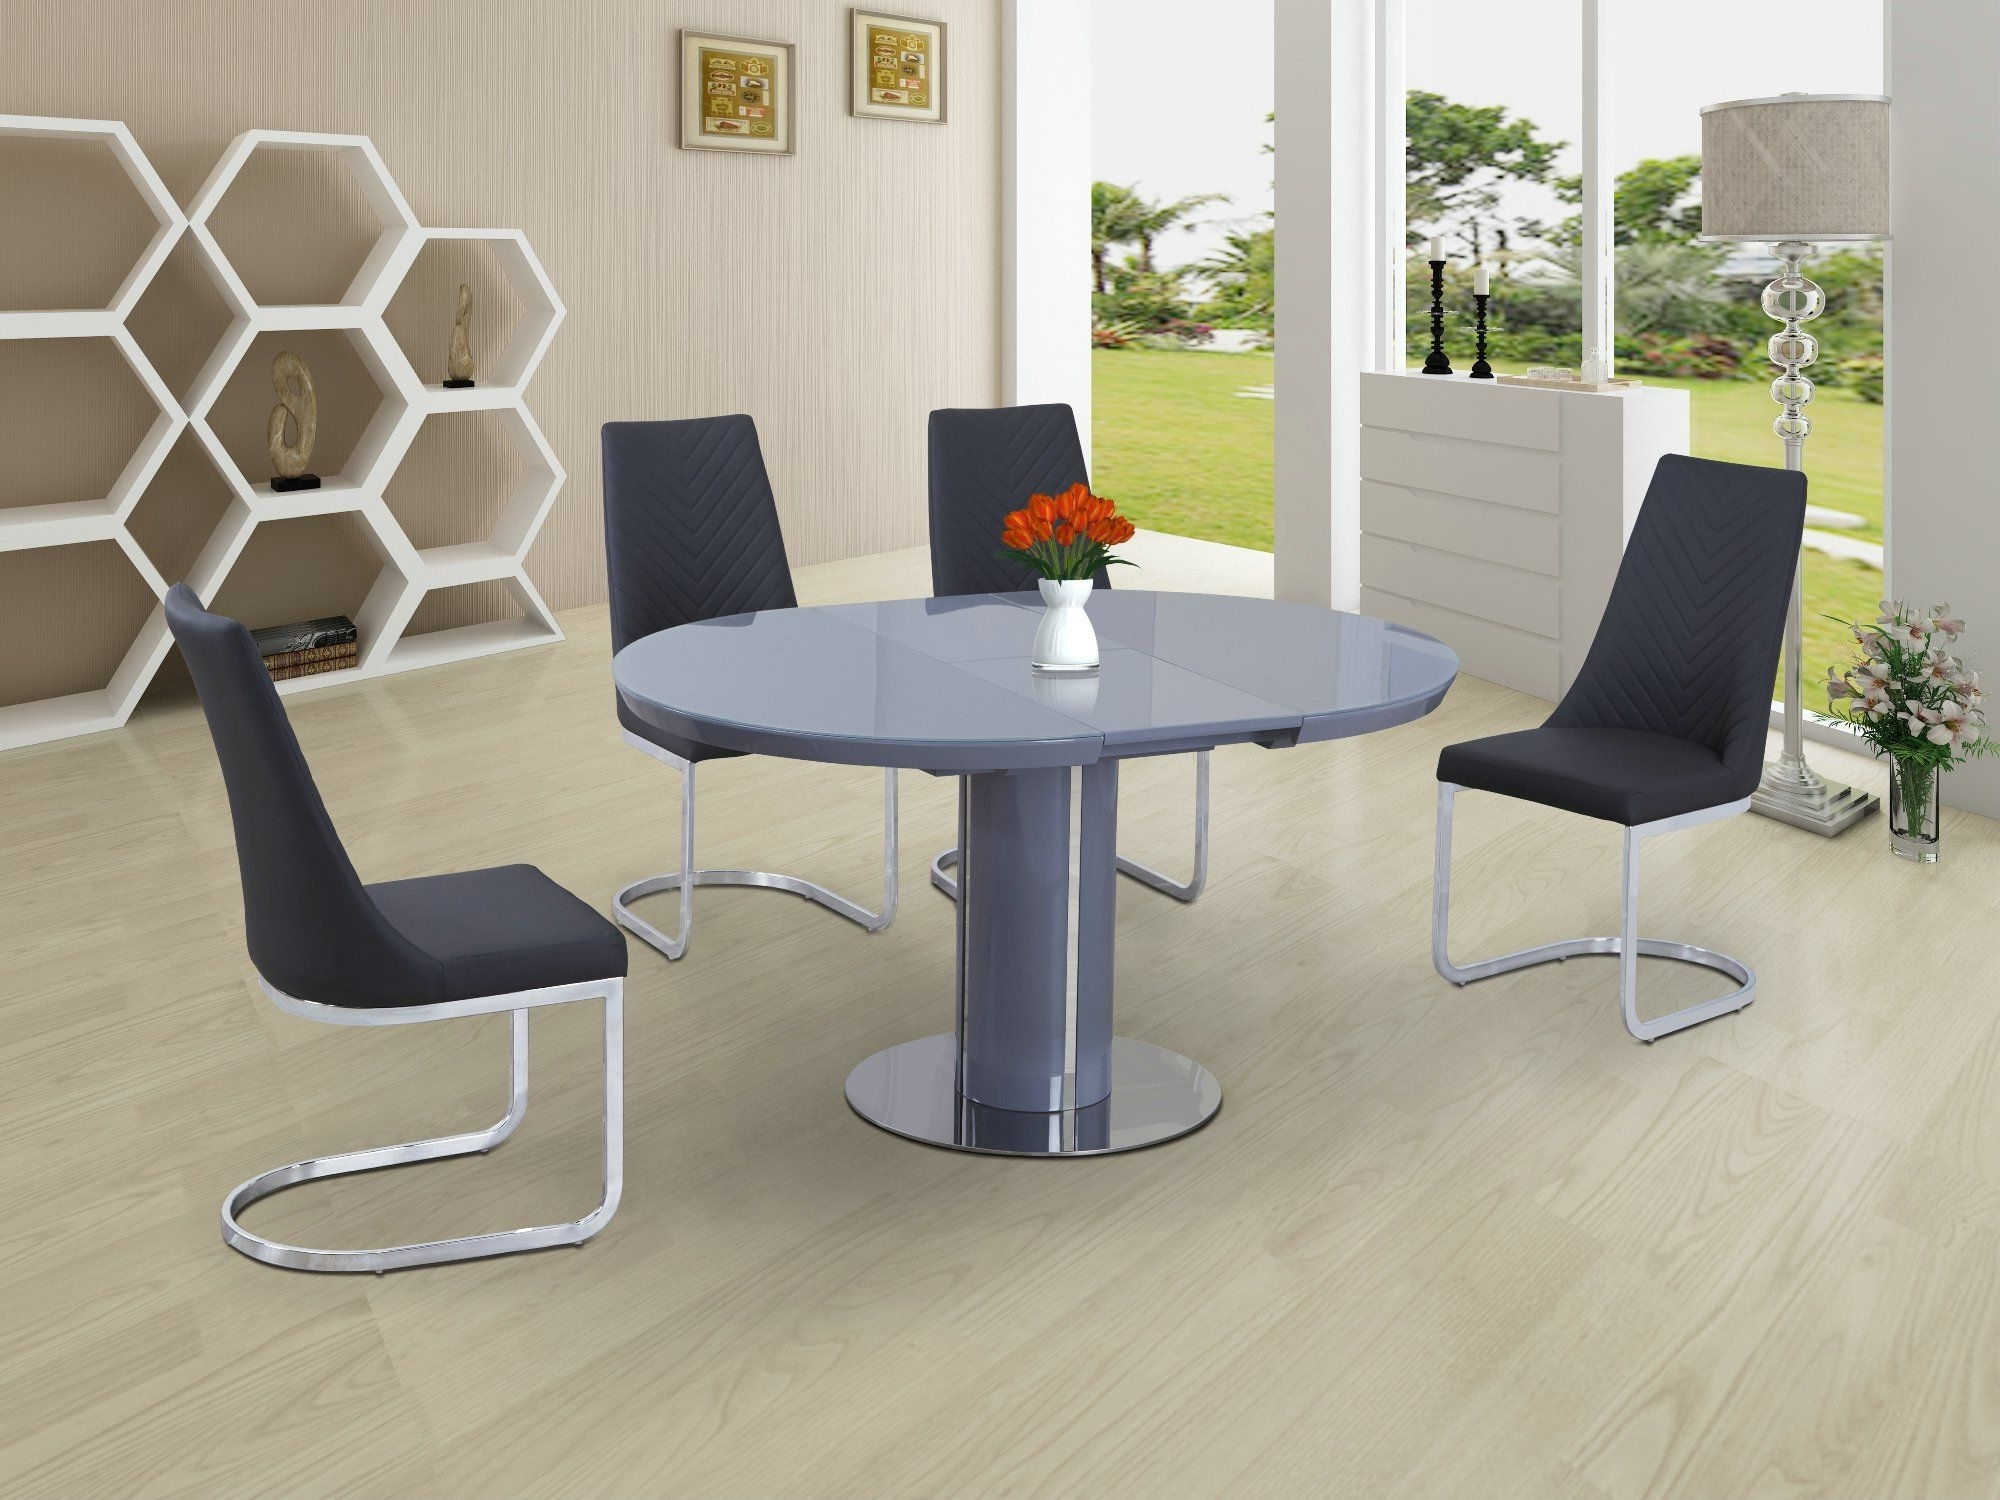 Buy Small Round Extendable Dining Table Today Intended For Preferred Round Extending Dining Tables (View 9 of 25)